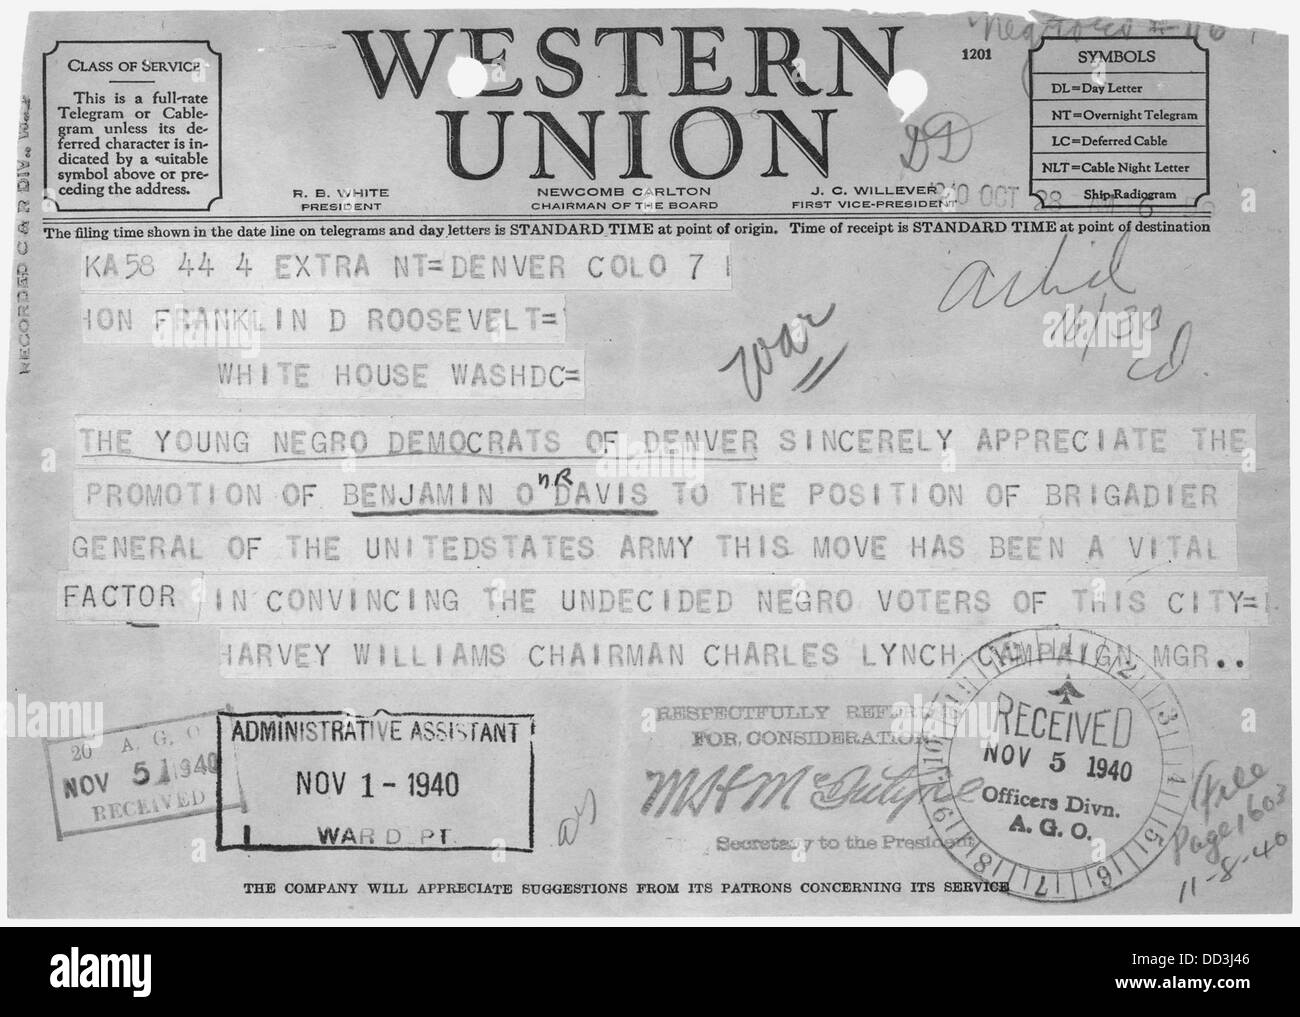 Telegram from Harvey Williams and Charles Lynch of Denver, Colorado, Chairman and Campaign Manager, respectively, - Stock Image